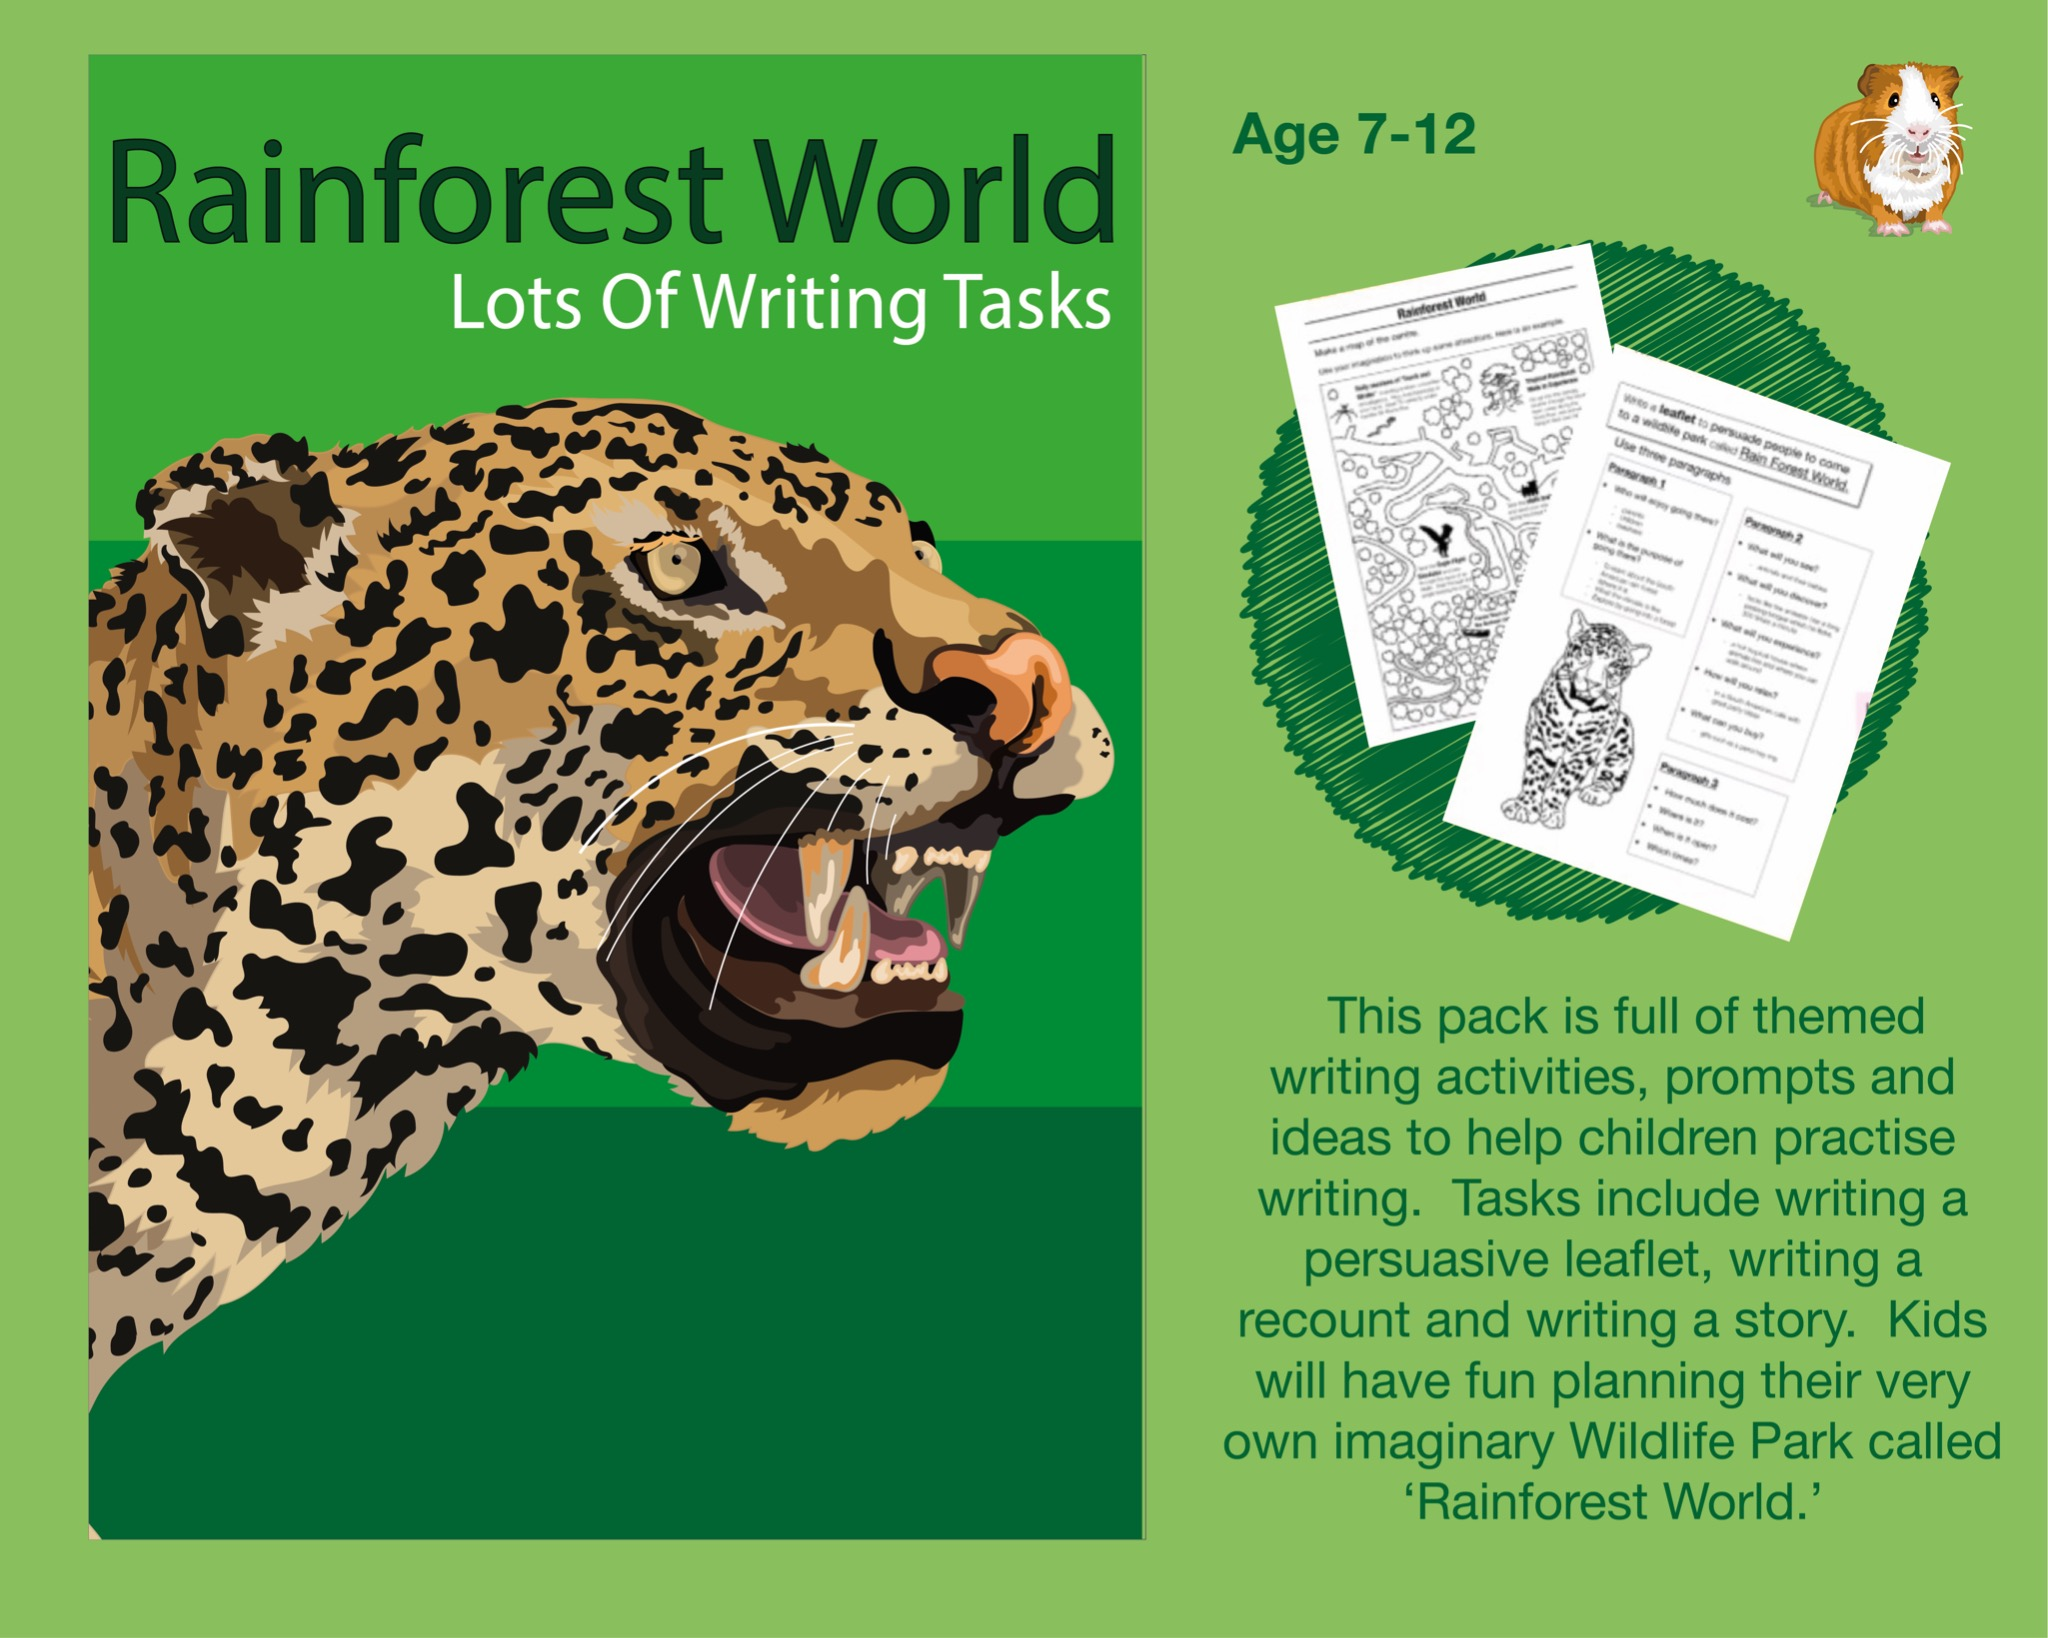 Lots Of Writing Tasks About A Wildlife Park Called Rainforest World (7-12 years)